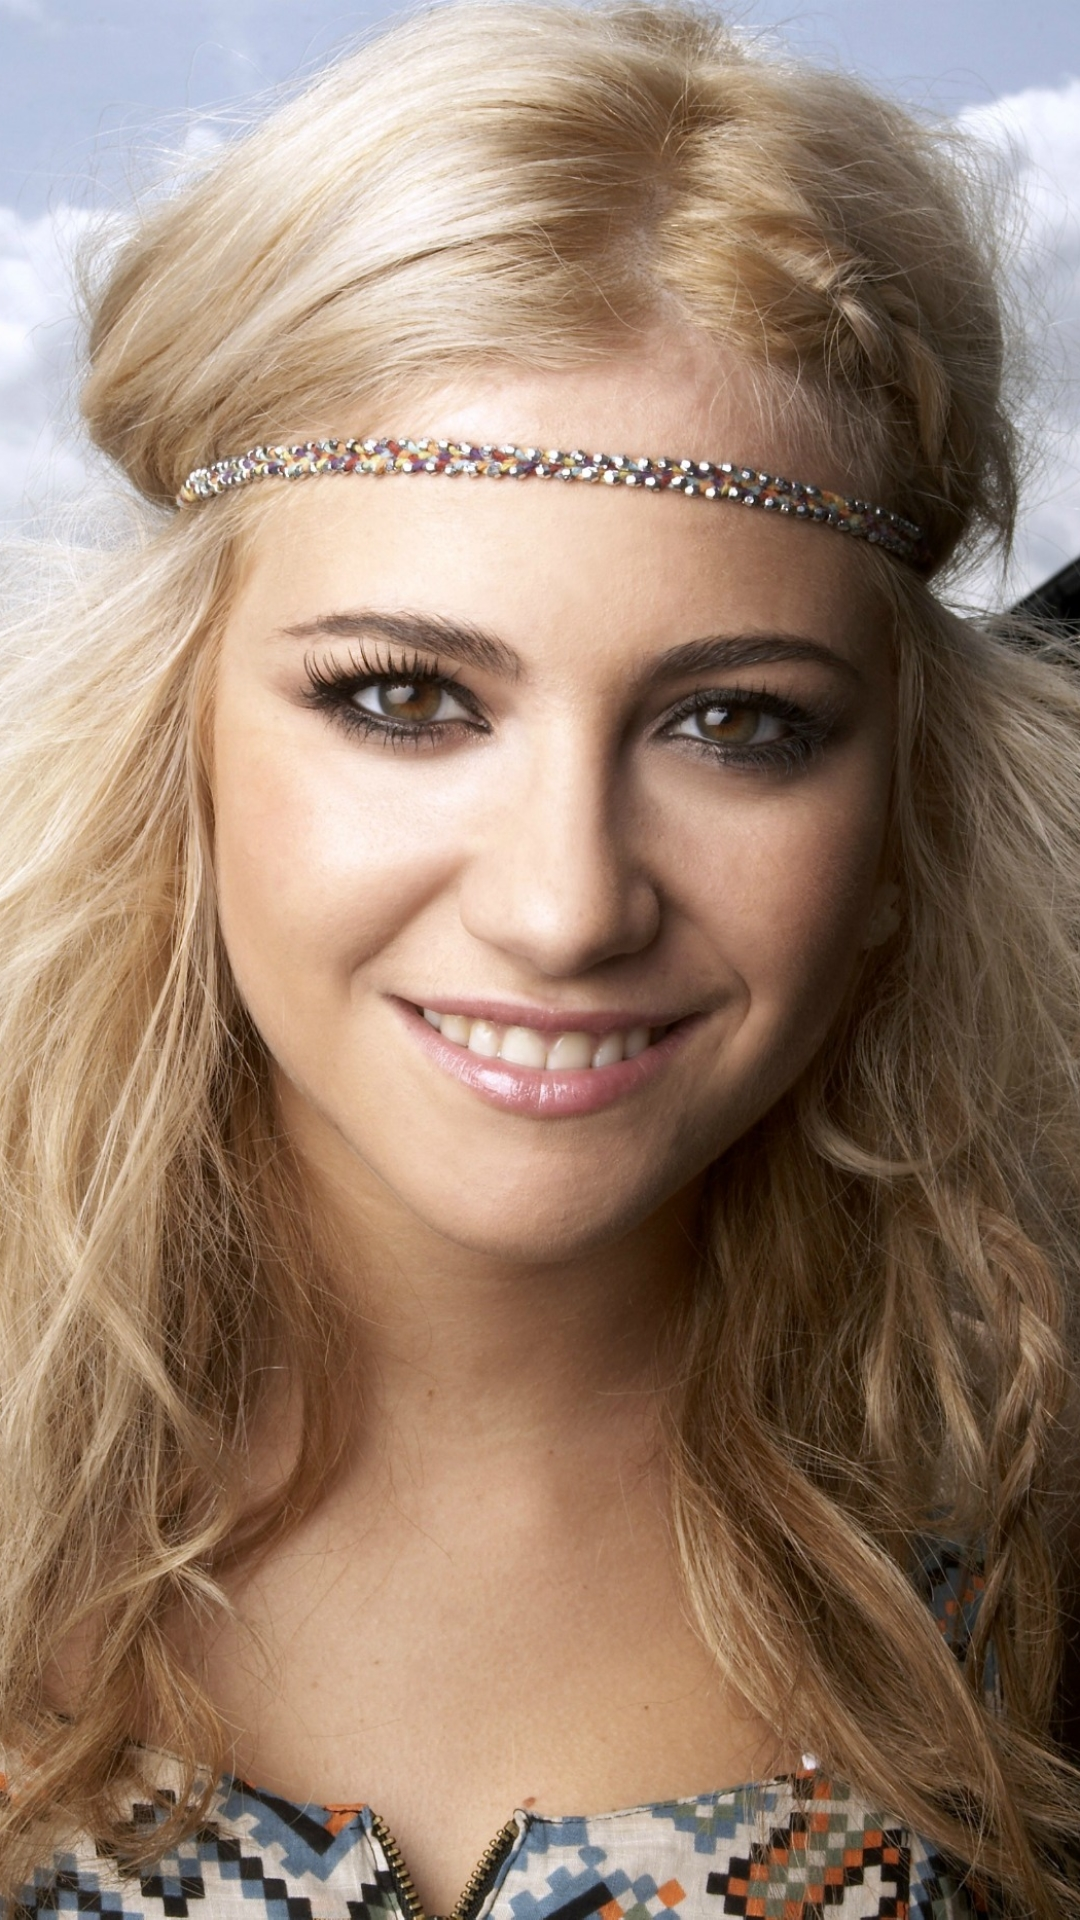 Music Pixie Lott 1080x1920 Wallpaper Id 662164 Mobile Abyss